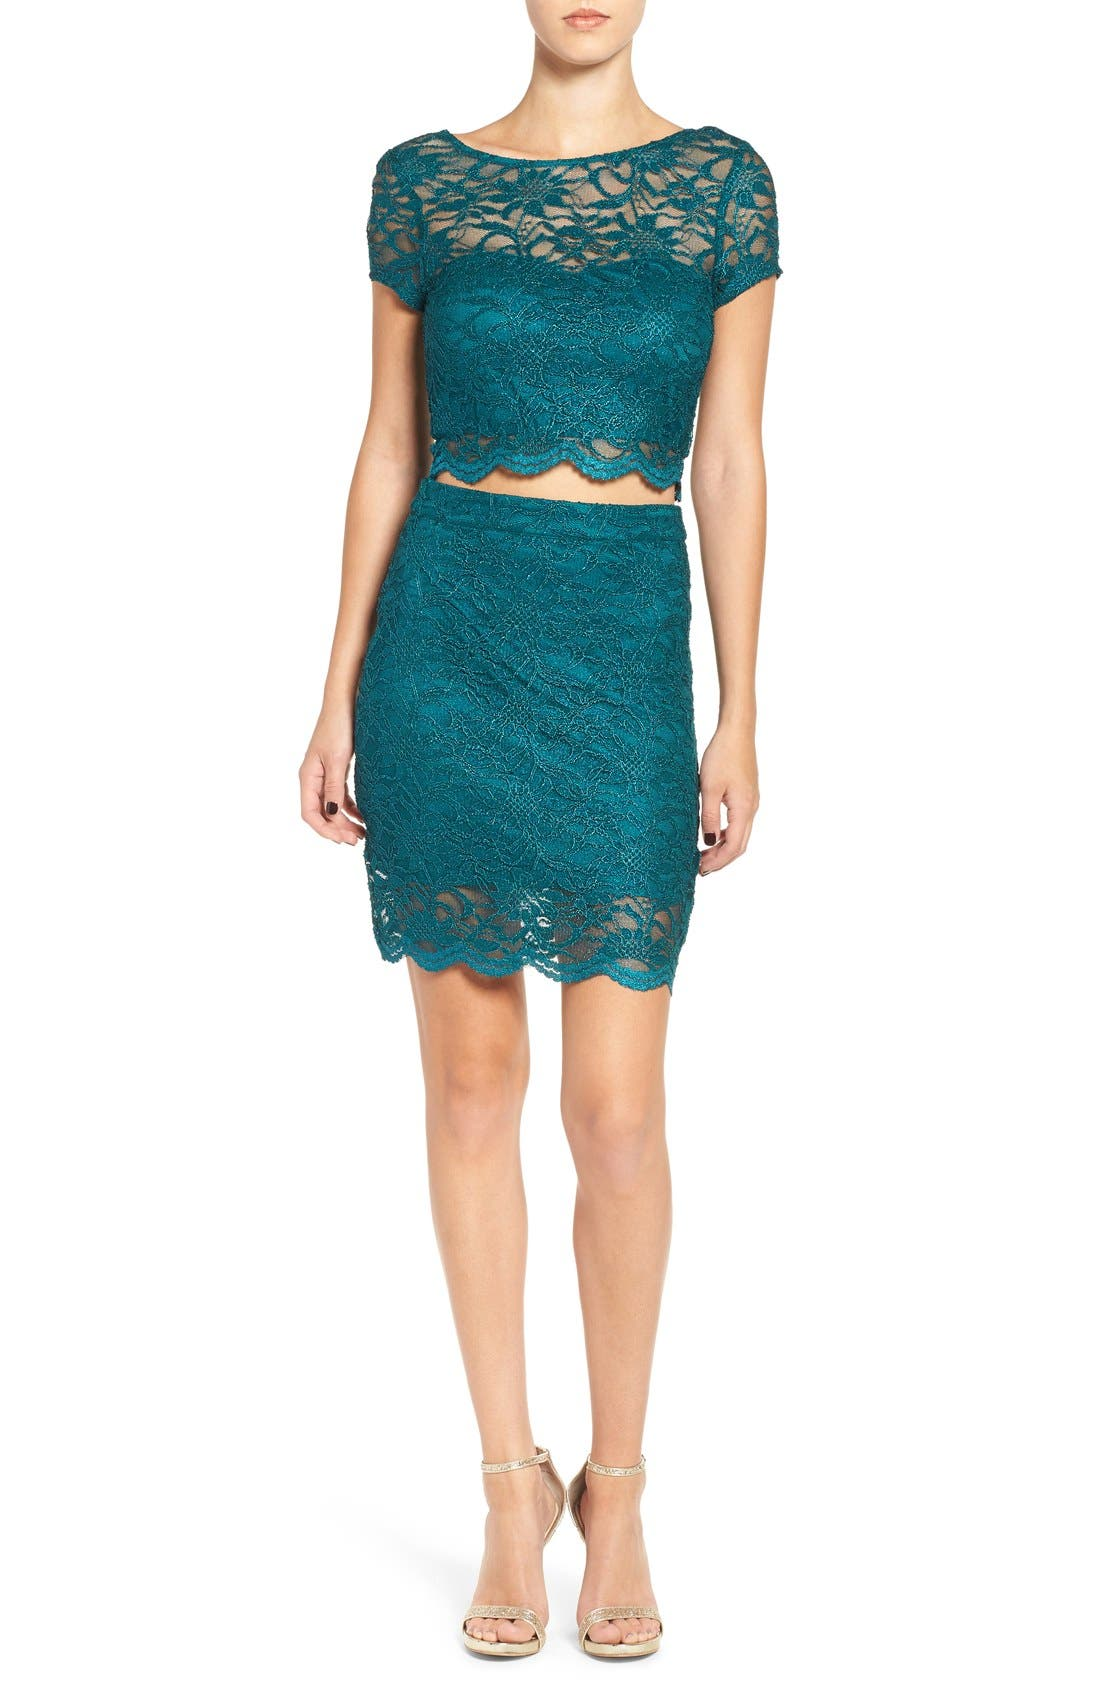 Alternate Image 1 Selected - Speechless Two-Piece Lace Body-Con Dress